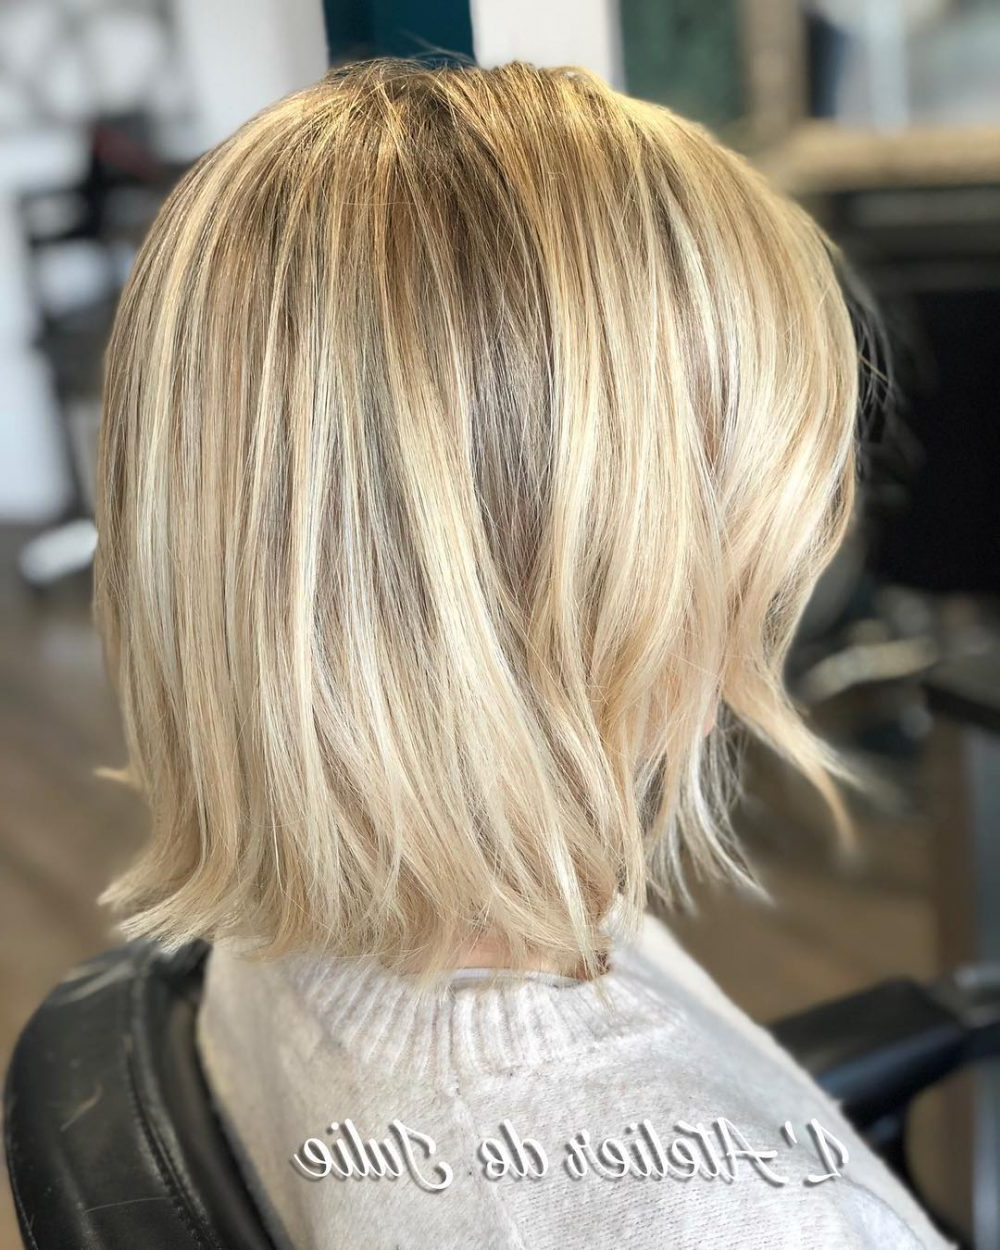 34 Perfect Short Haircuts And Hairstyles For Thin Hair (2018) Pertaining To Sleek Bob Hairstyles For Thin Hair (View 6 of 20)